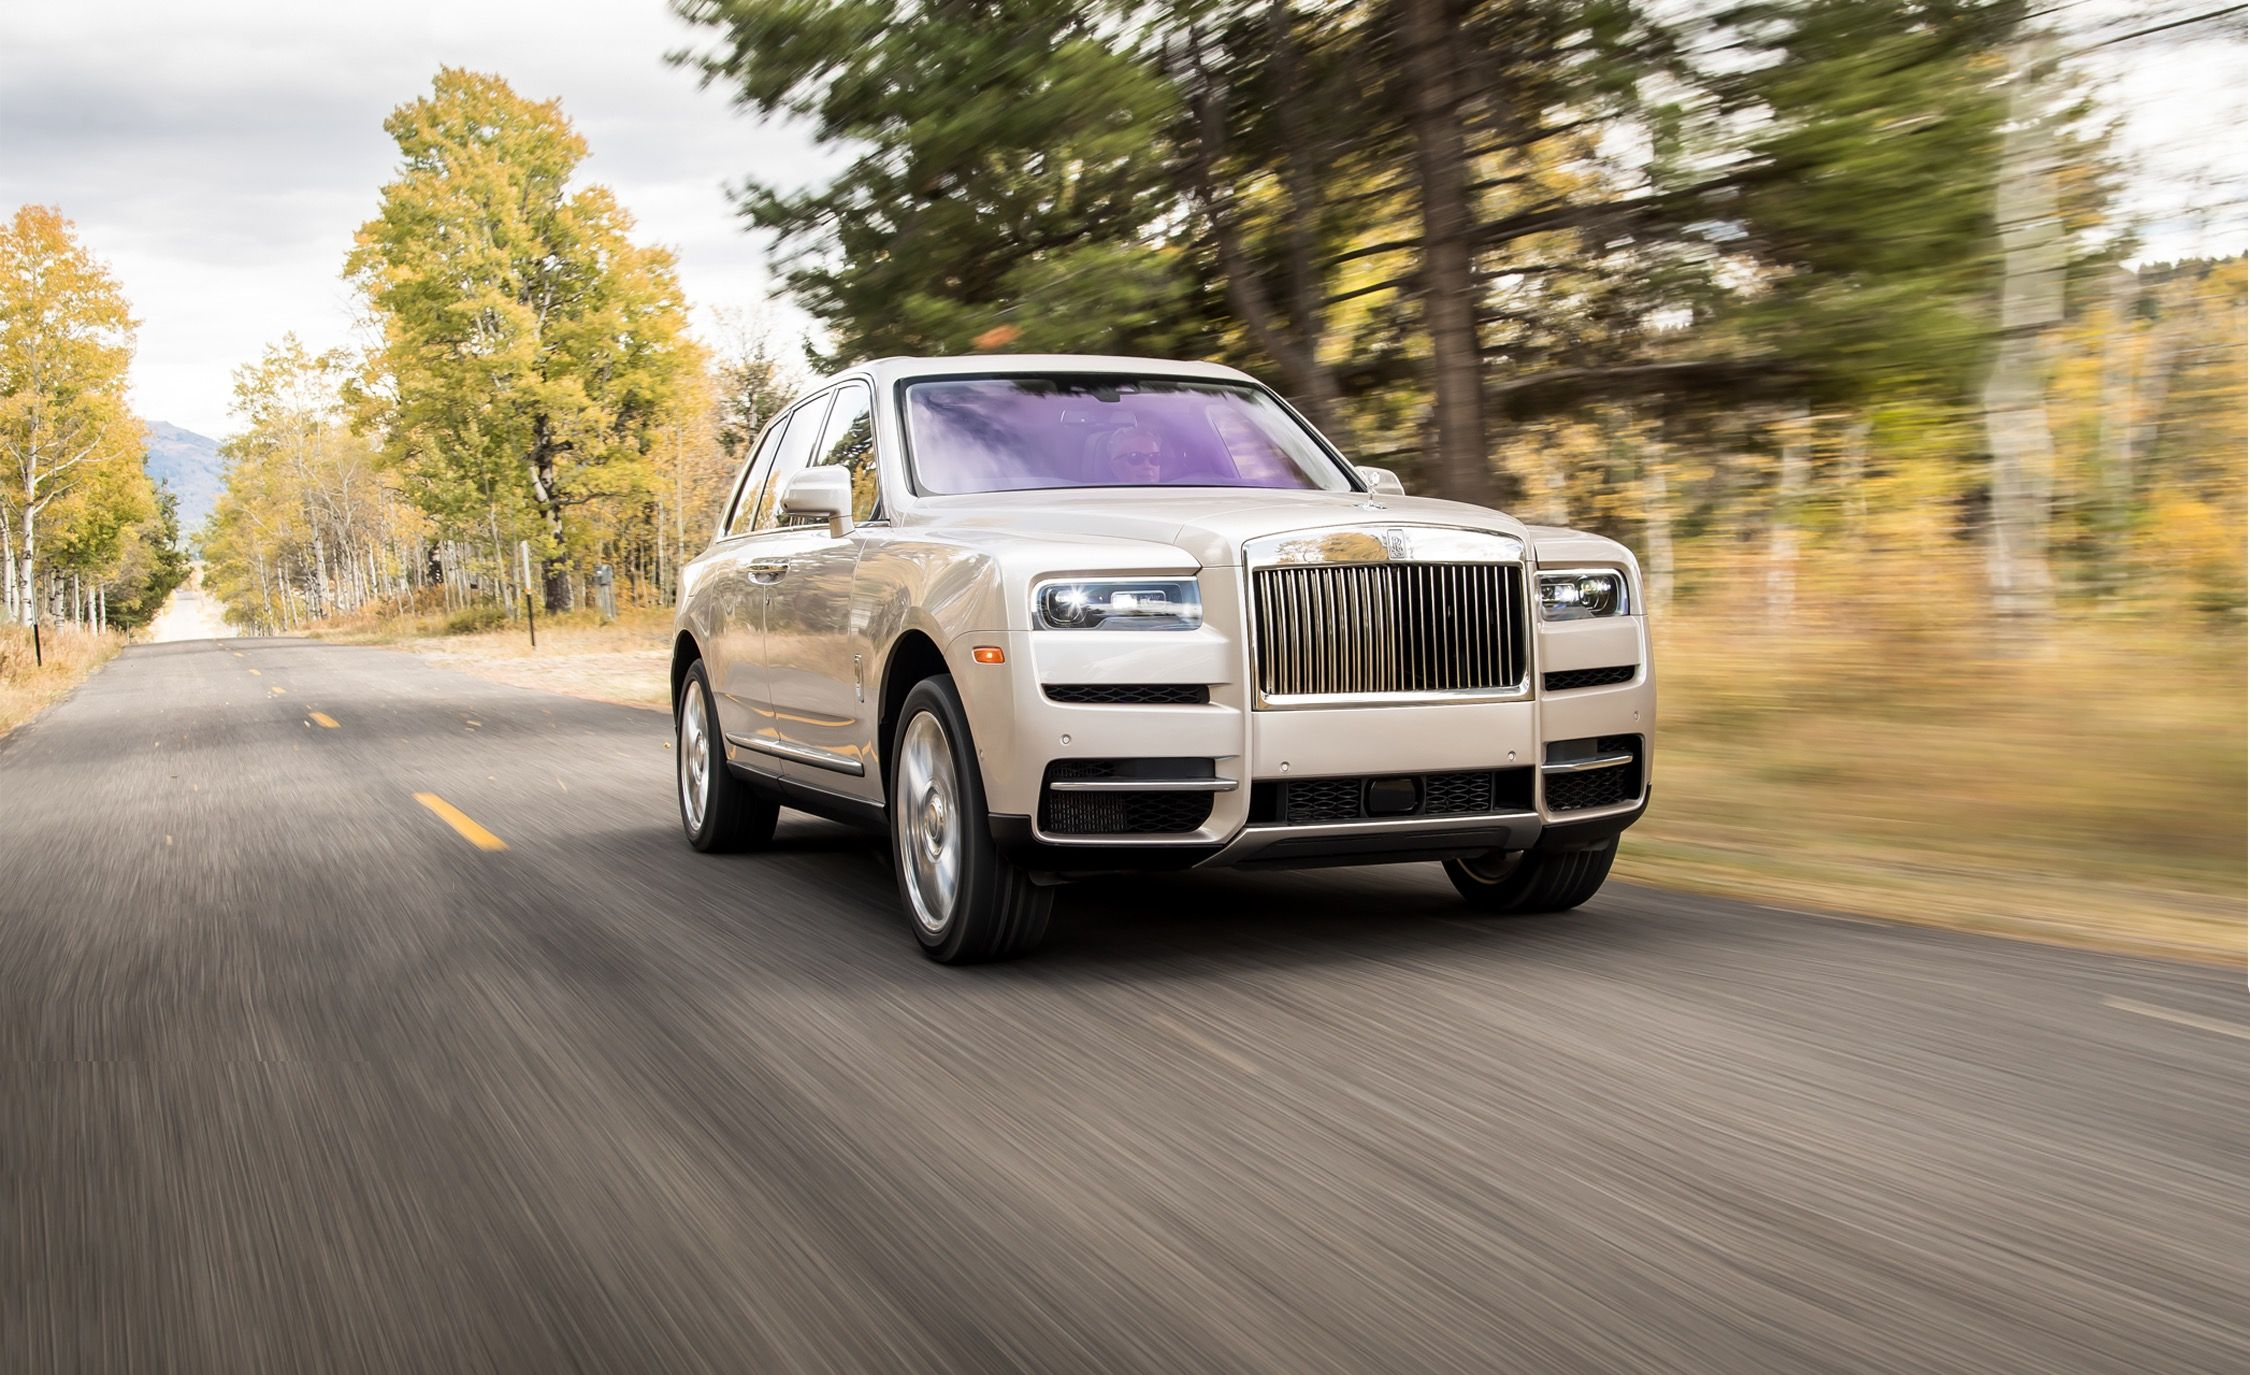 The 2019 Rolls-Royce Cullinan Is an SUV for Royalty